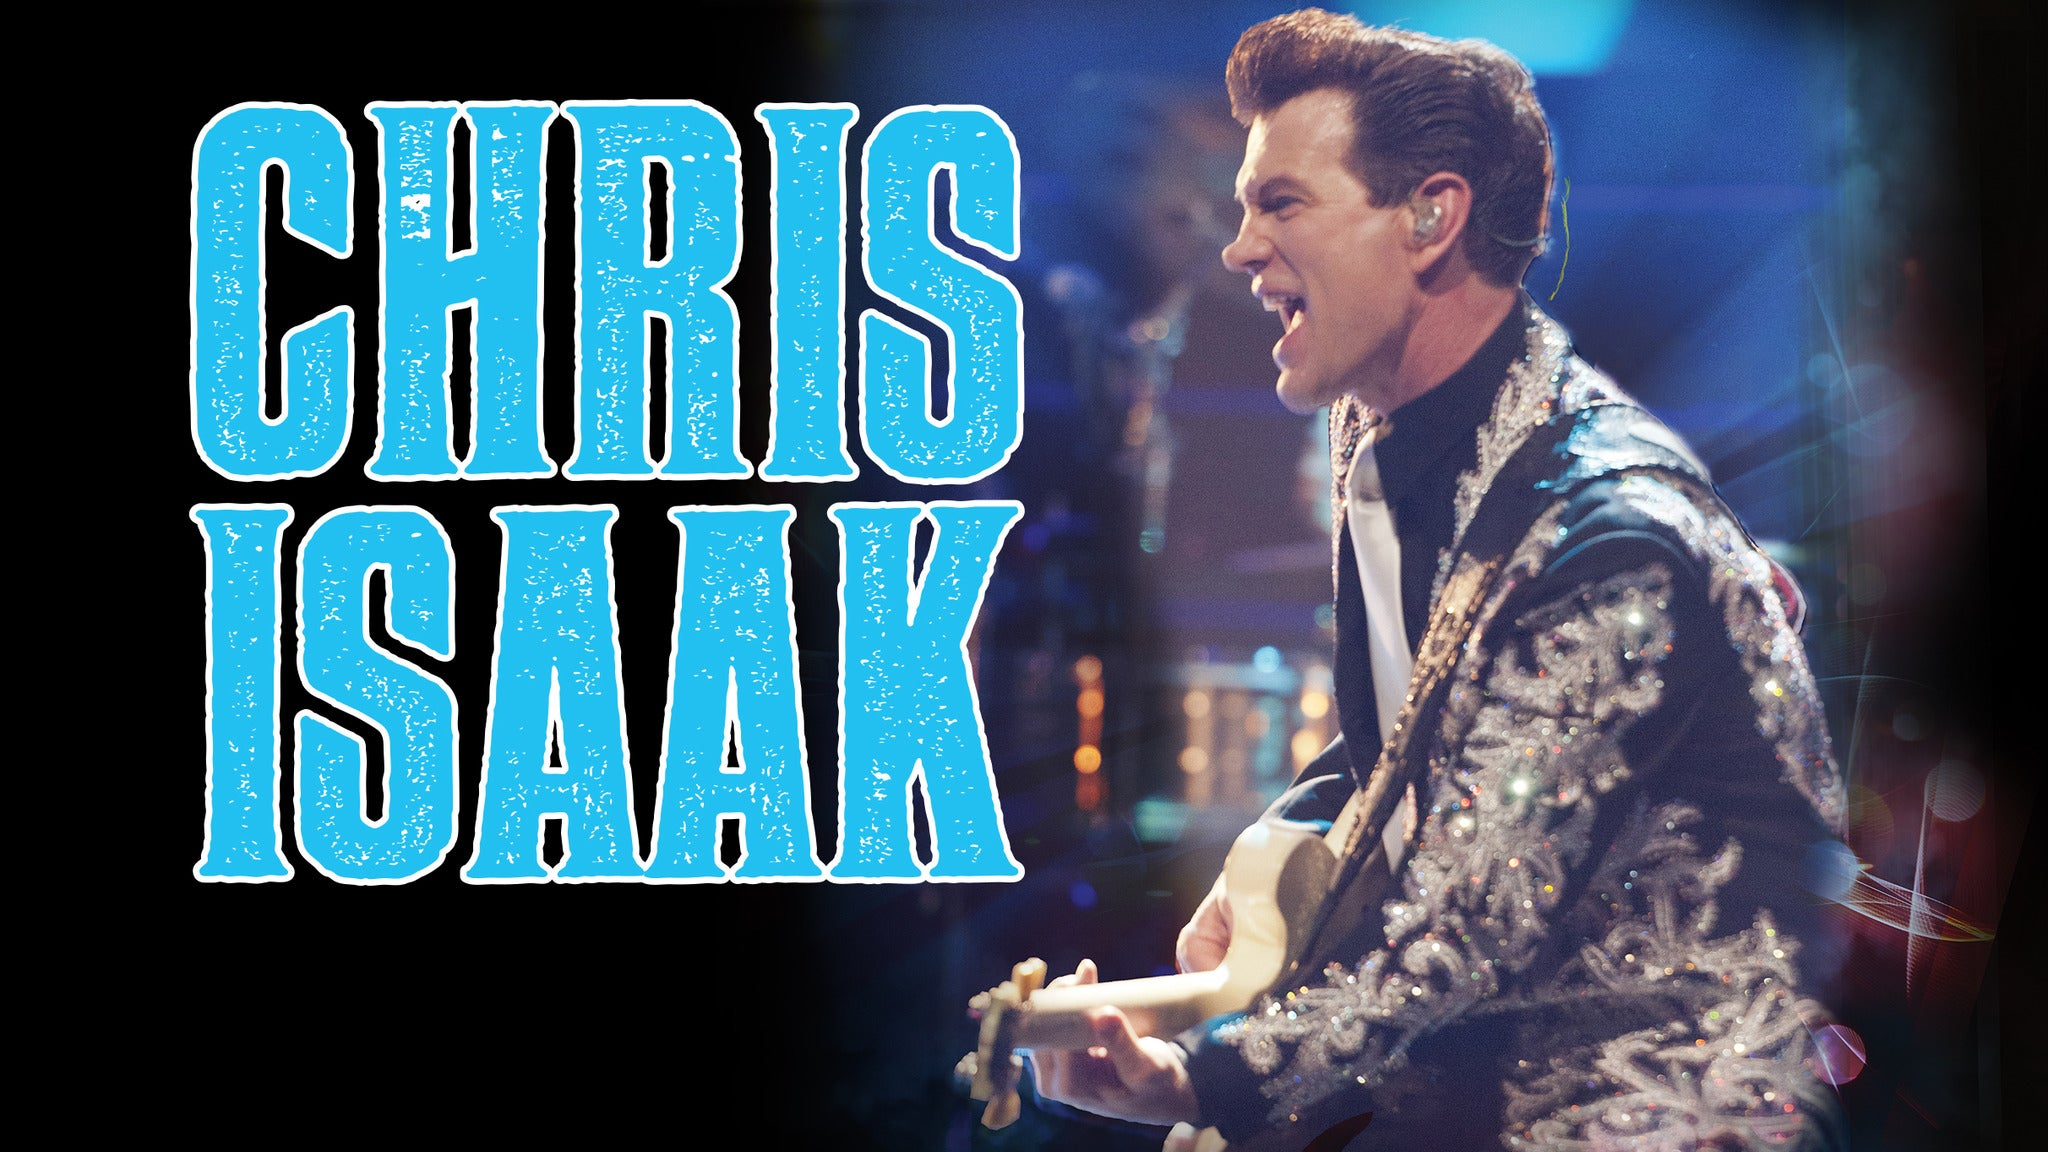 Chris Isaak: Holiday Tour 2017 at Uptown Theatre Napa